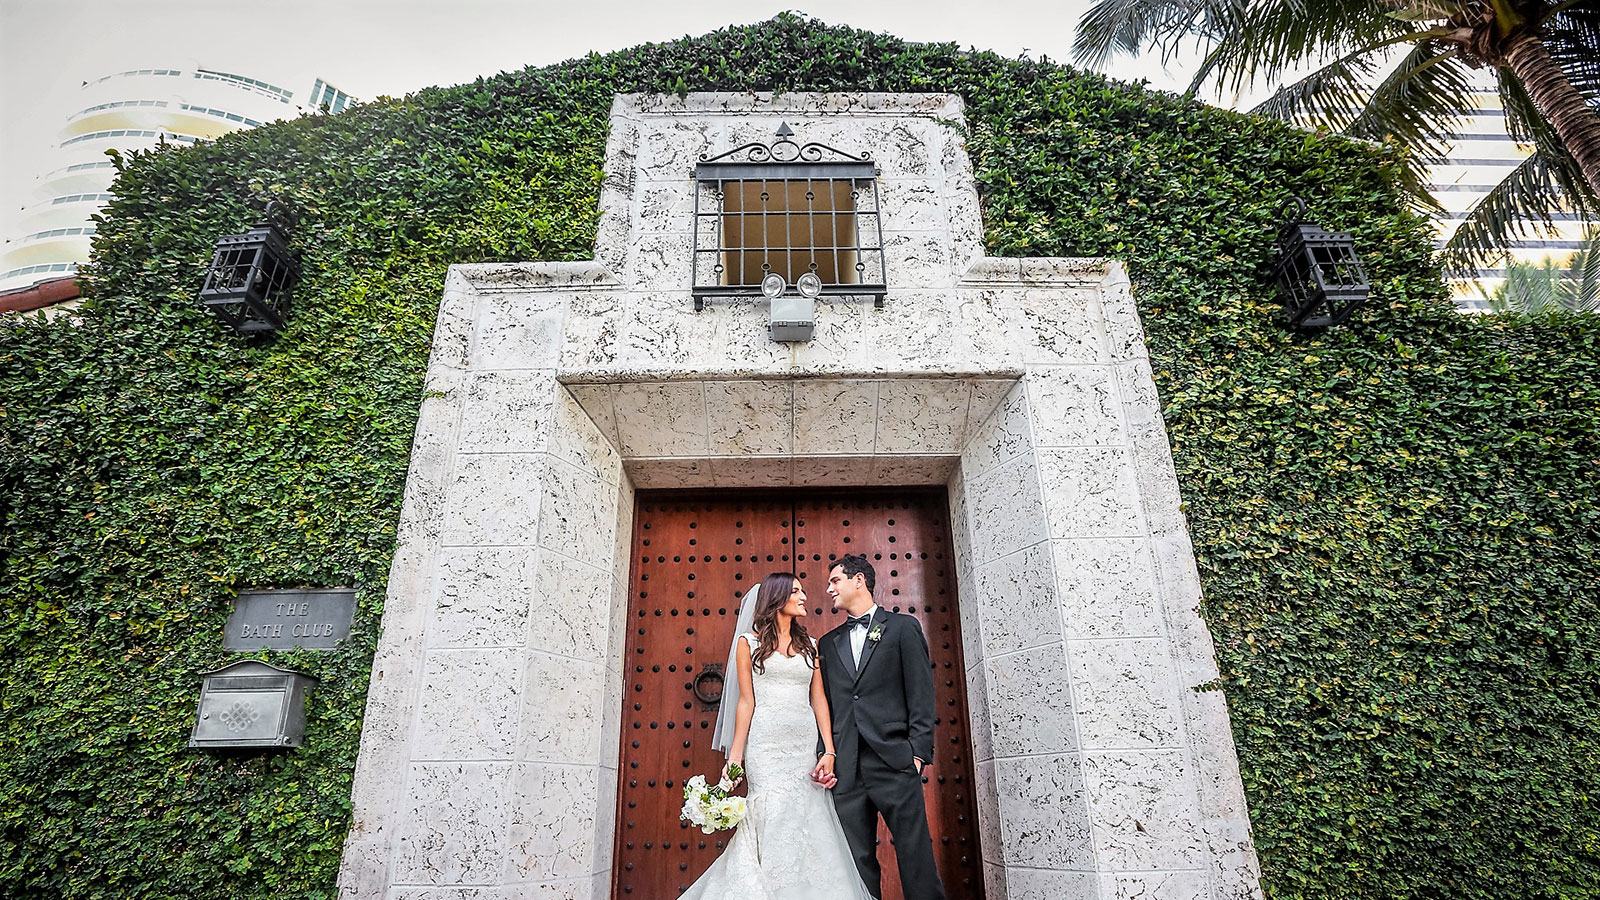 Bride and Groom at the entrance of The Bath Club in Miami Beach